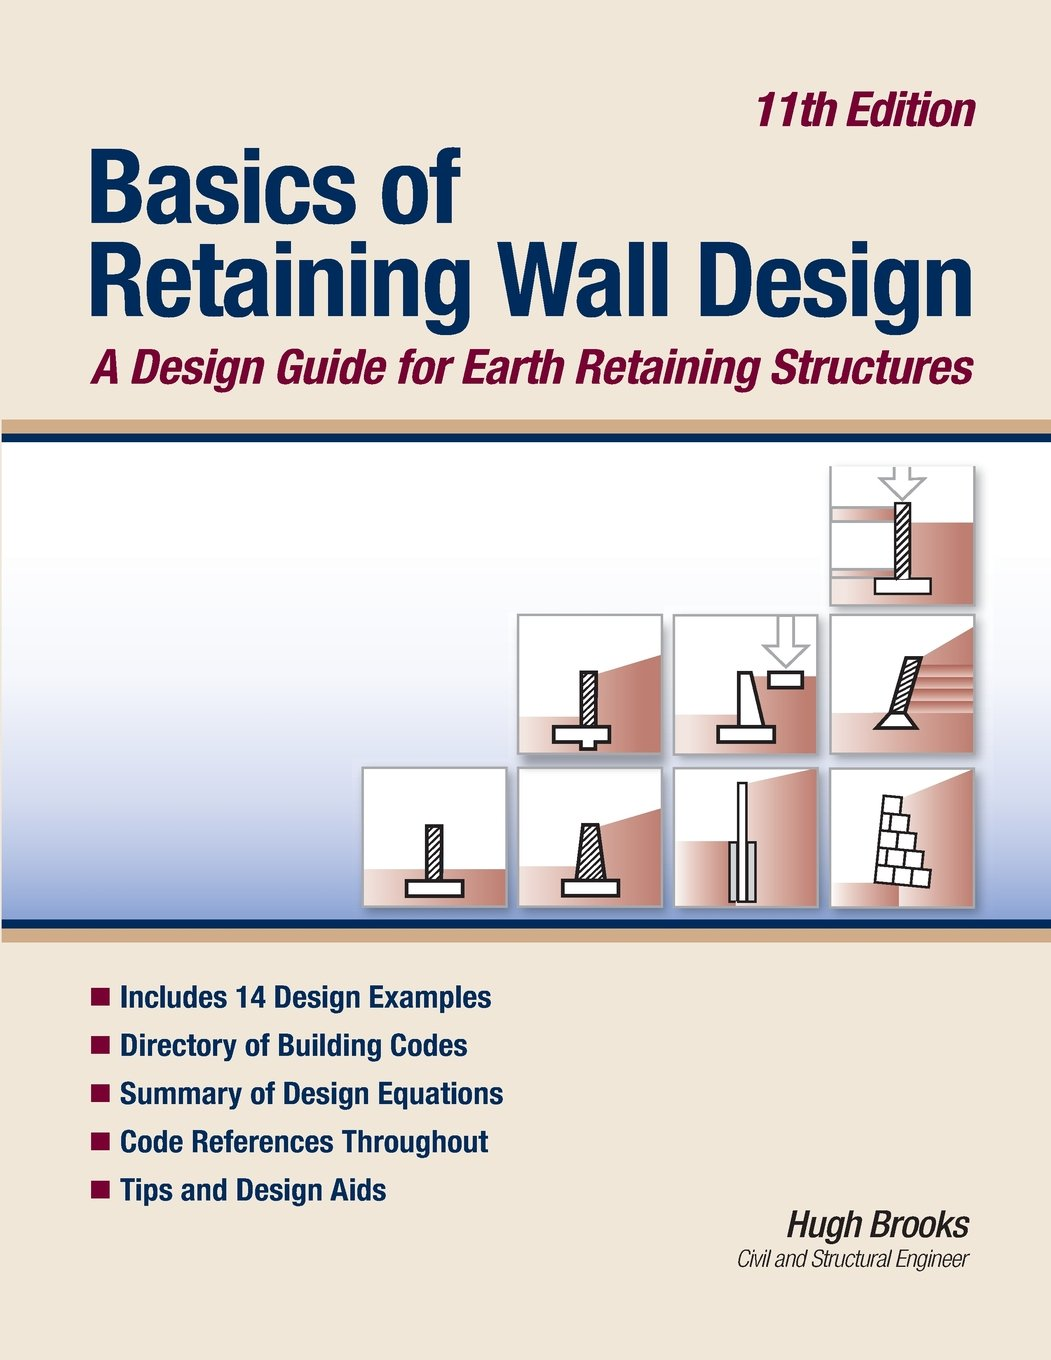 Basics Of Retaining Wall Design 11th Edition A Design Guide For Earth Retaining Structures Brooks Hugh 9780976836476 Amazon Com Books